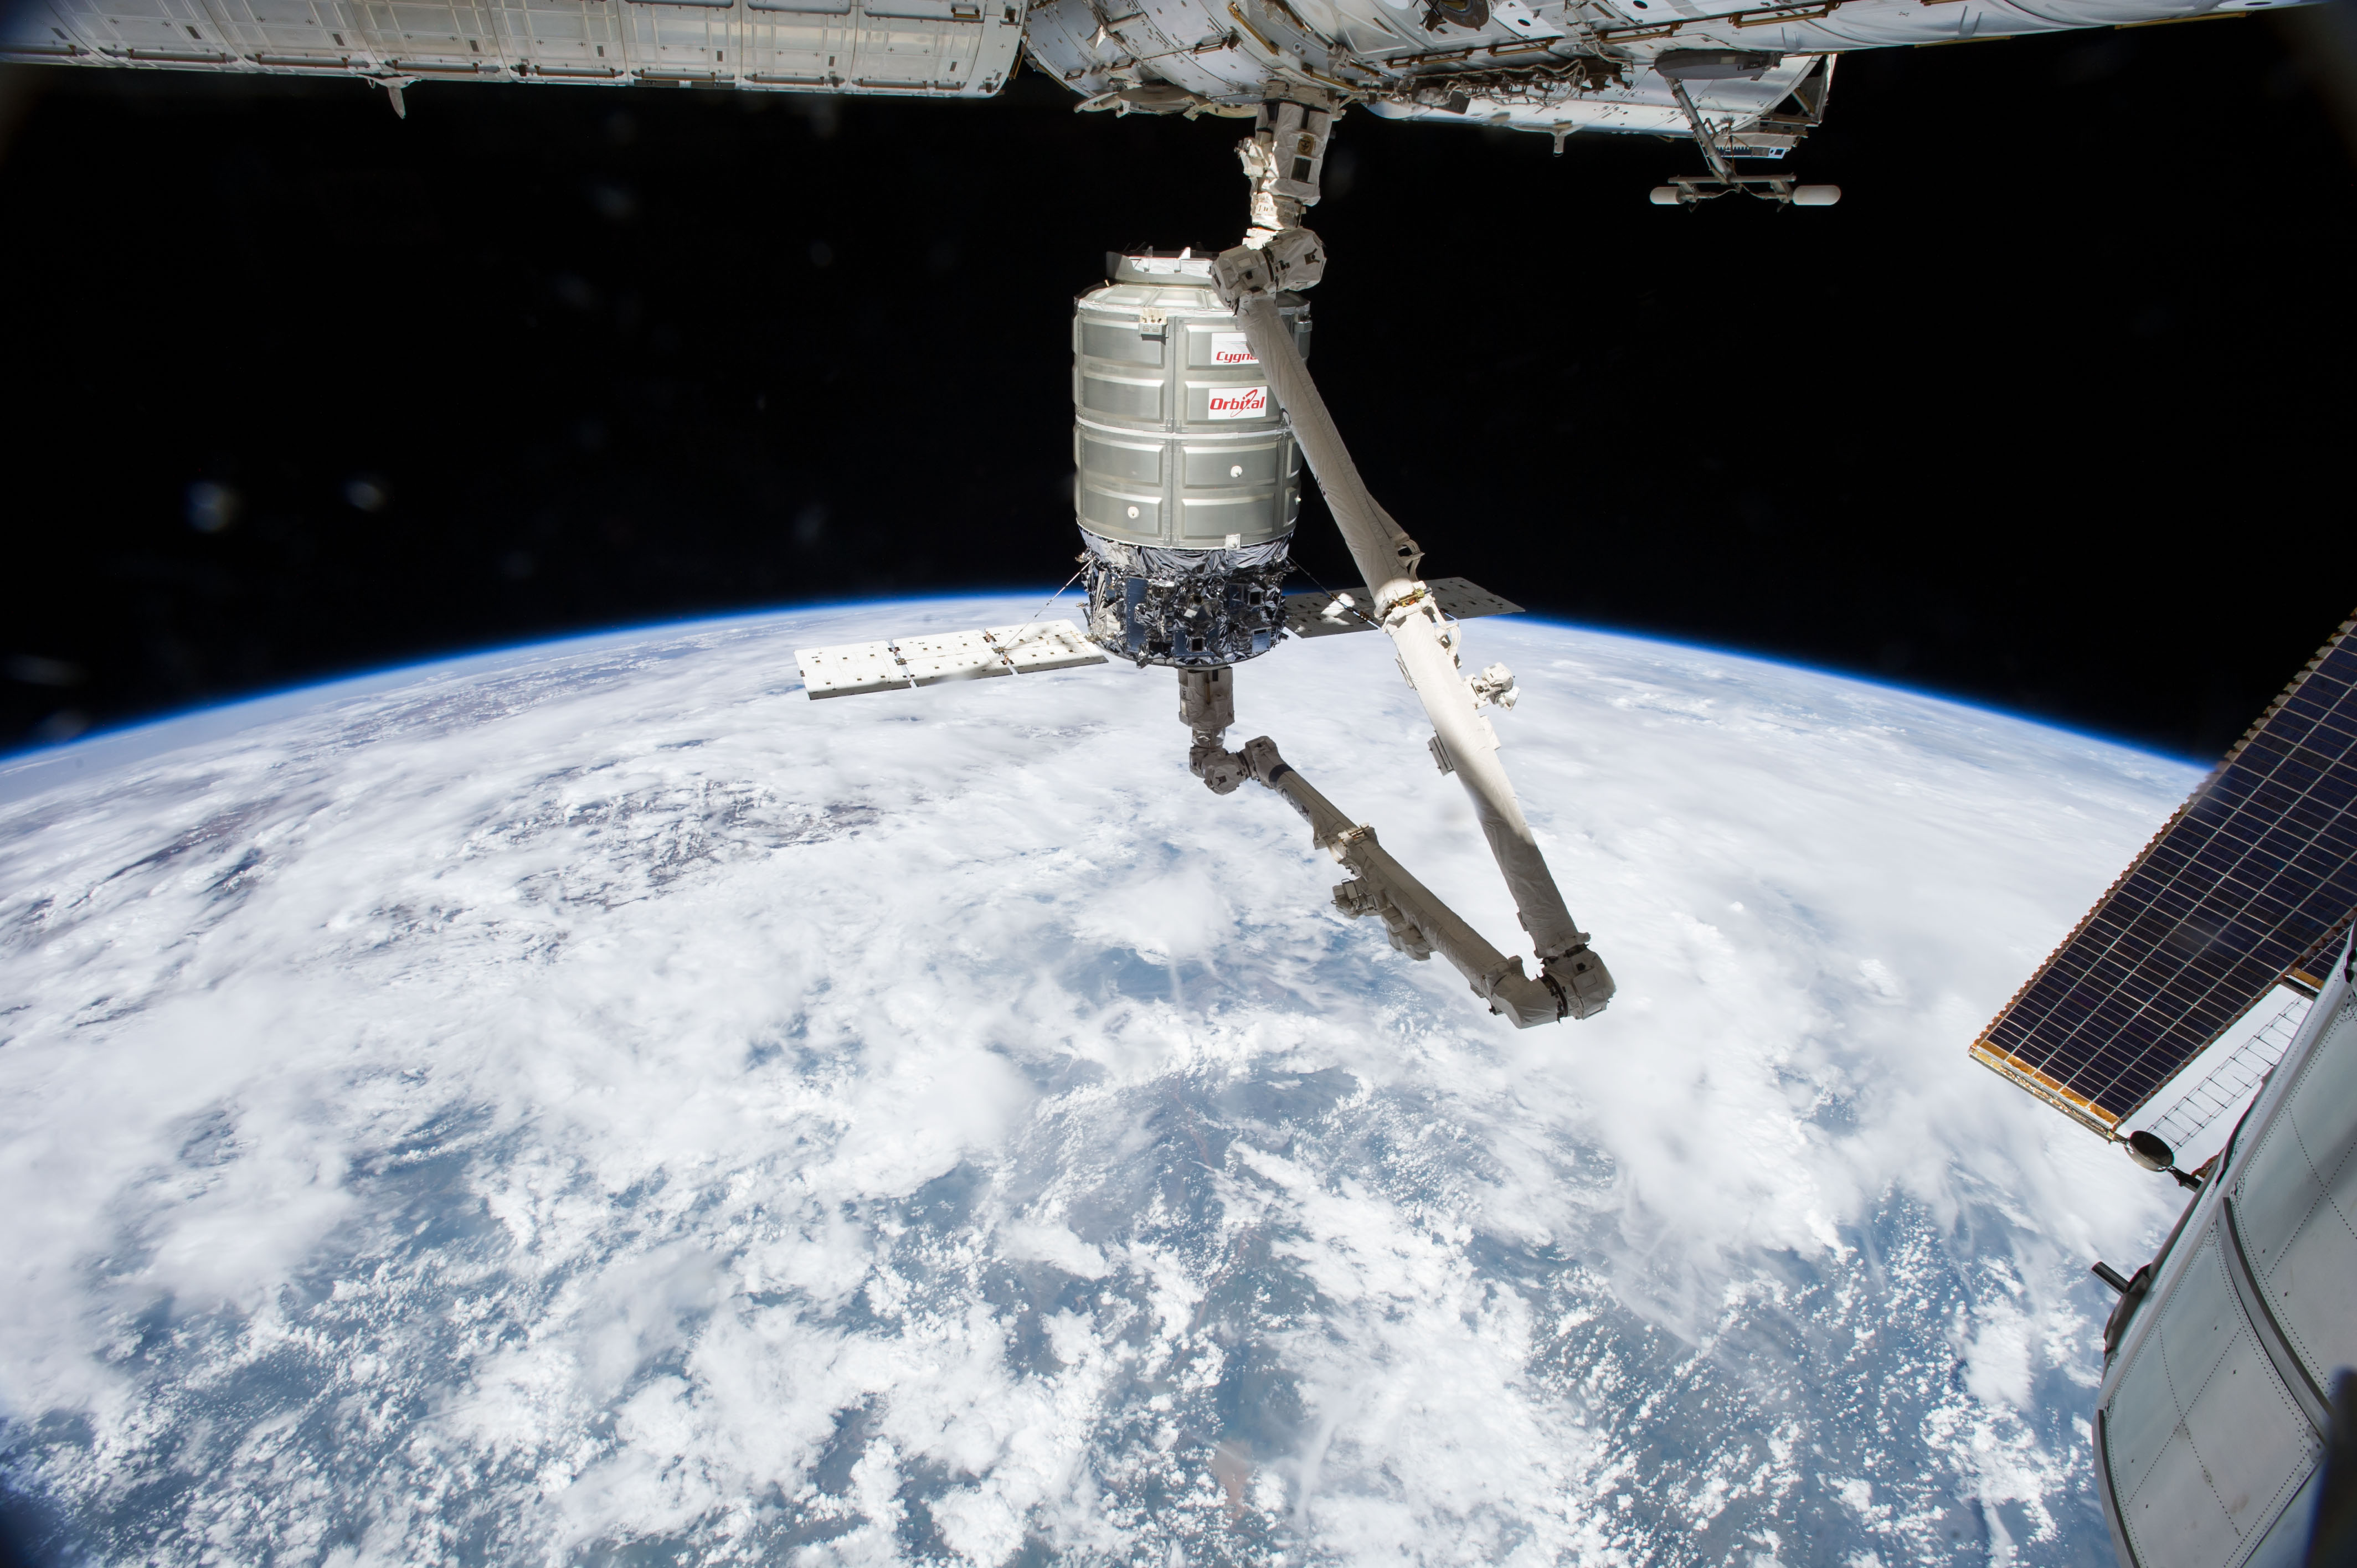 ISS resupply mission